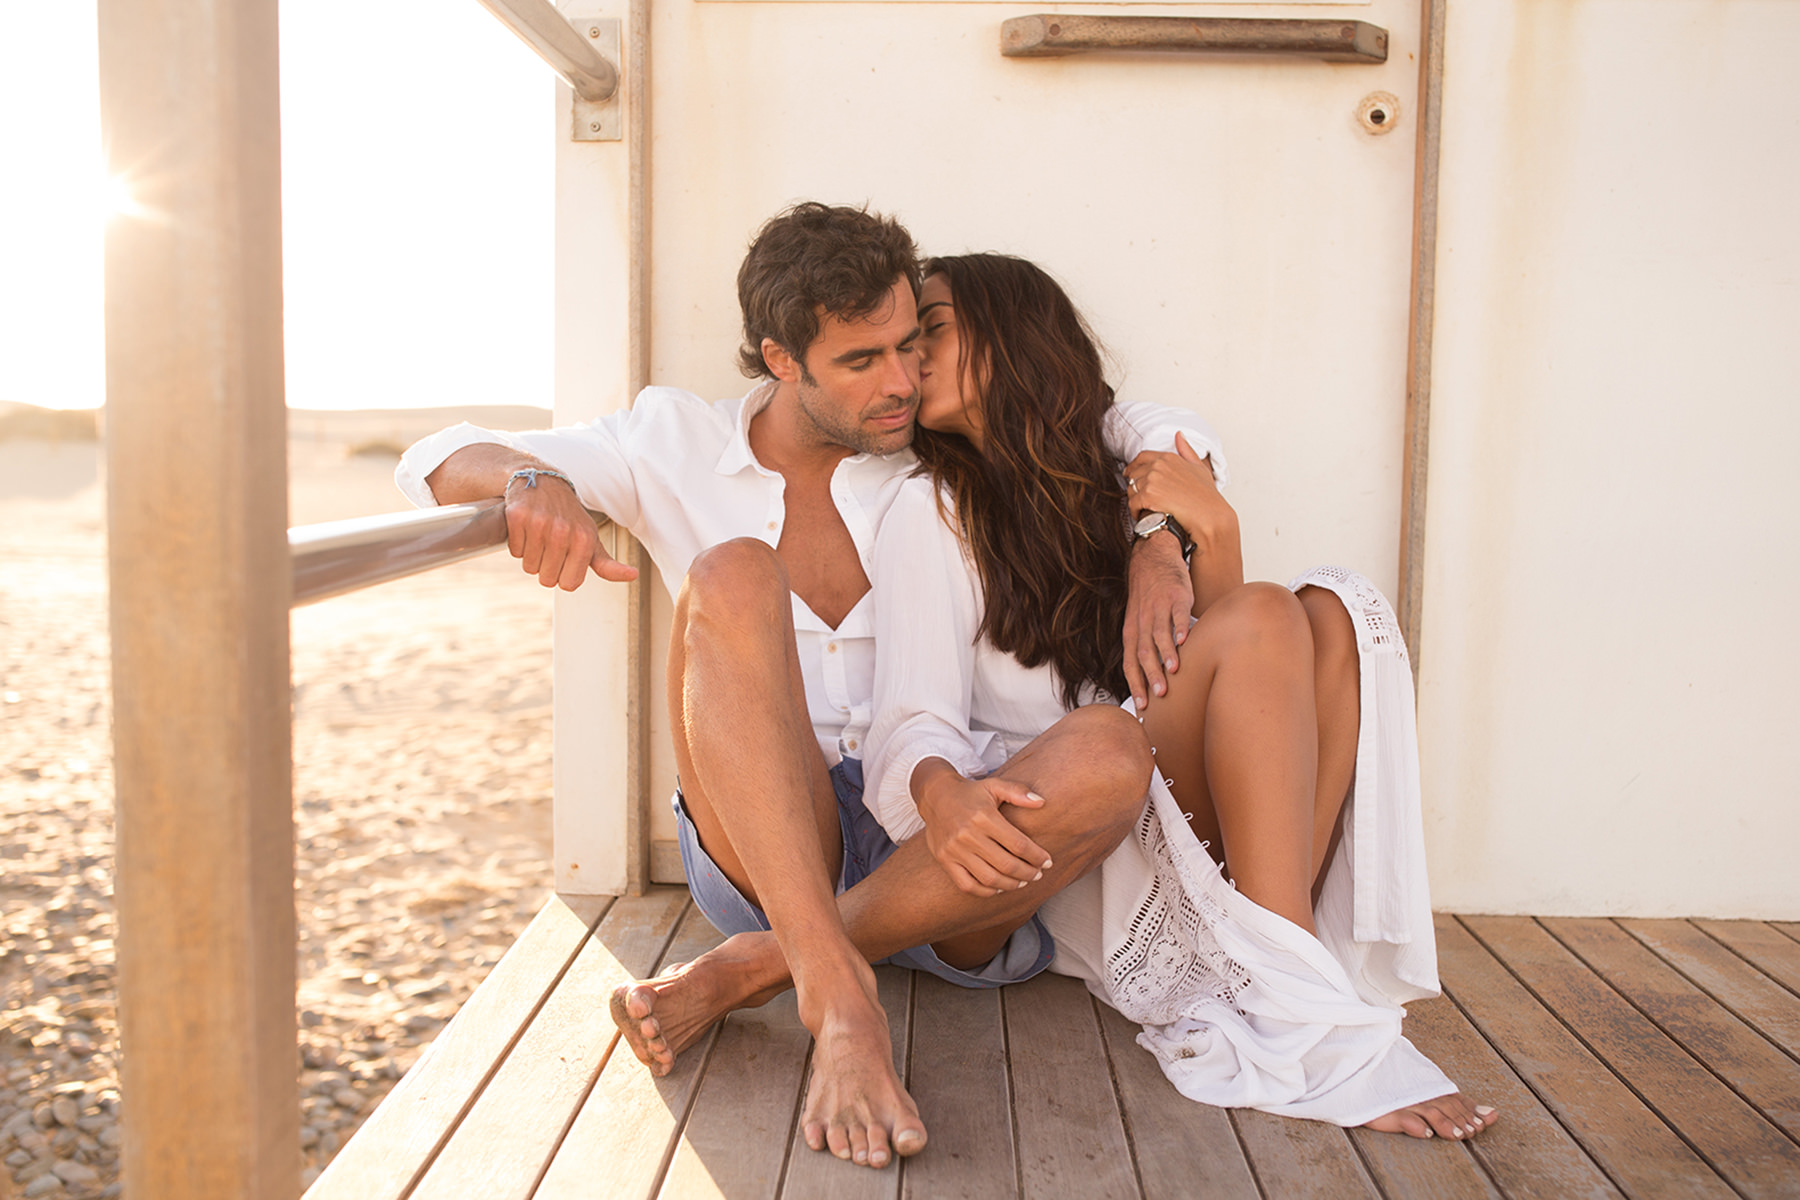 A couple is sitting on a porch at the beach and the woman is kissing the man.